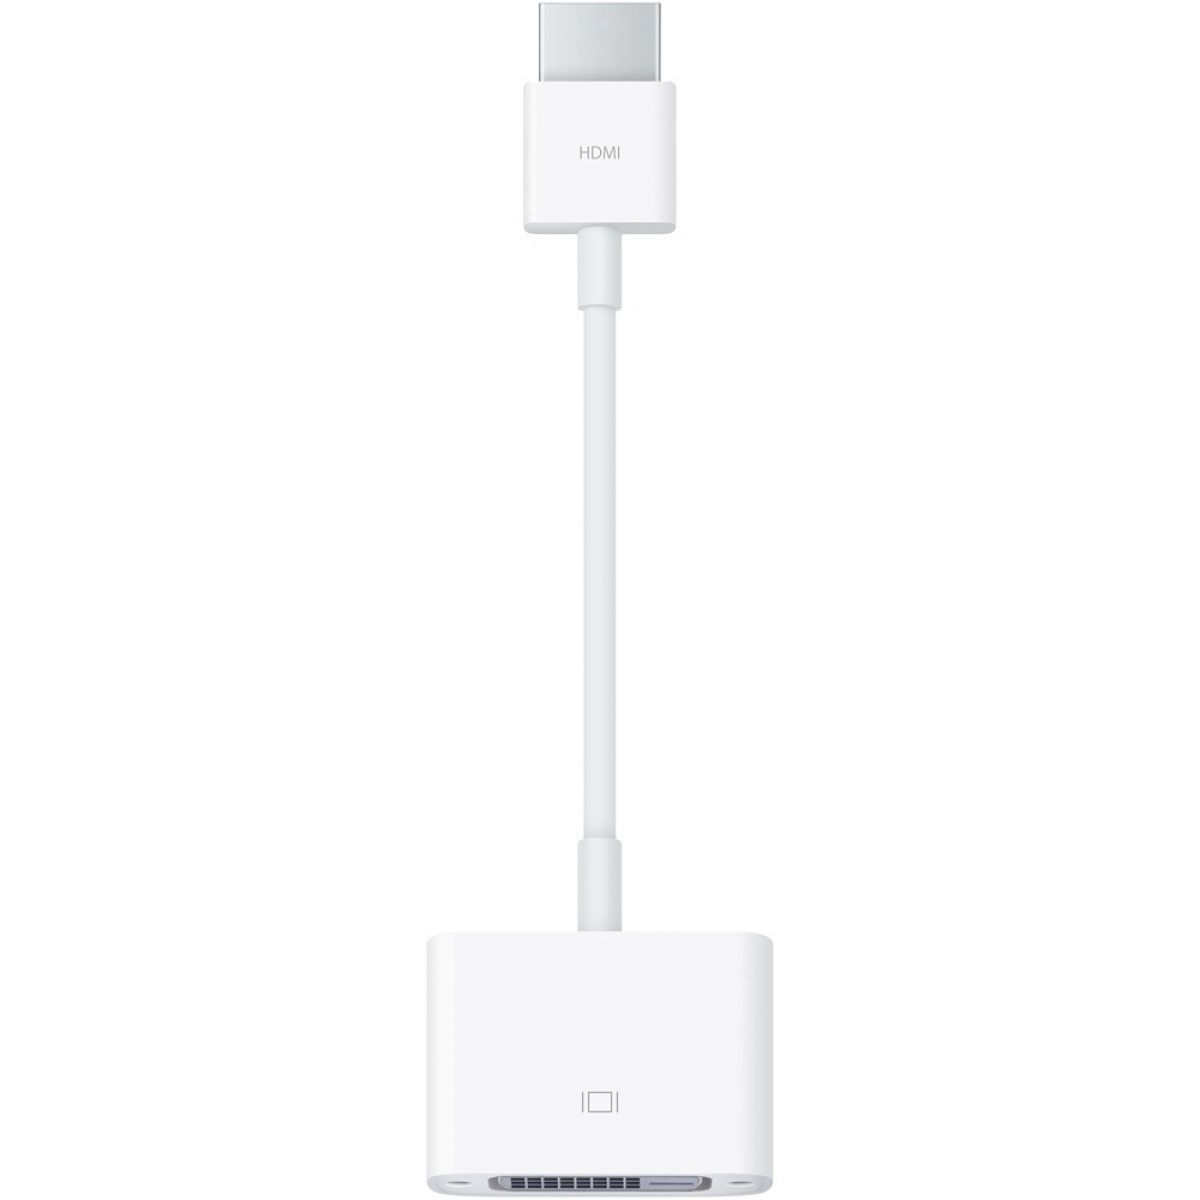 Apple Adapter Cable адаптер HDMI-DVI microsoft wireless display adapter v2 беспроводной usb hdmi адаптер